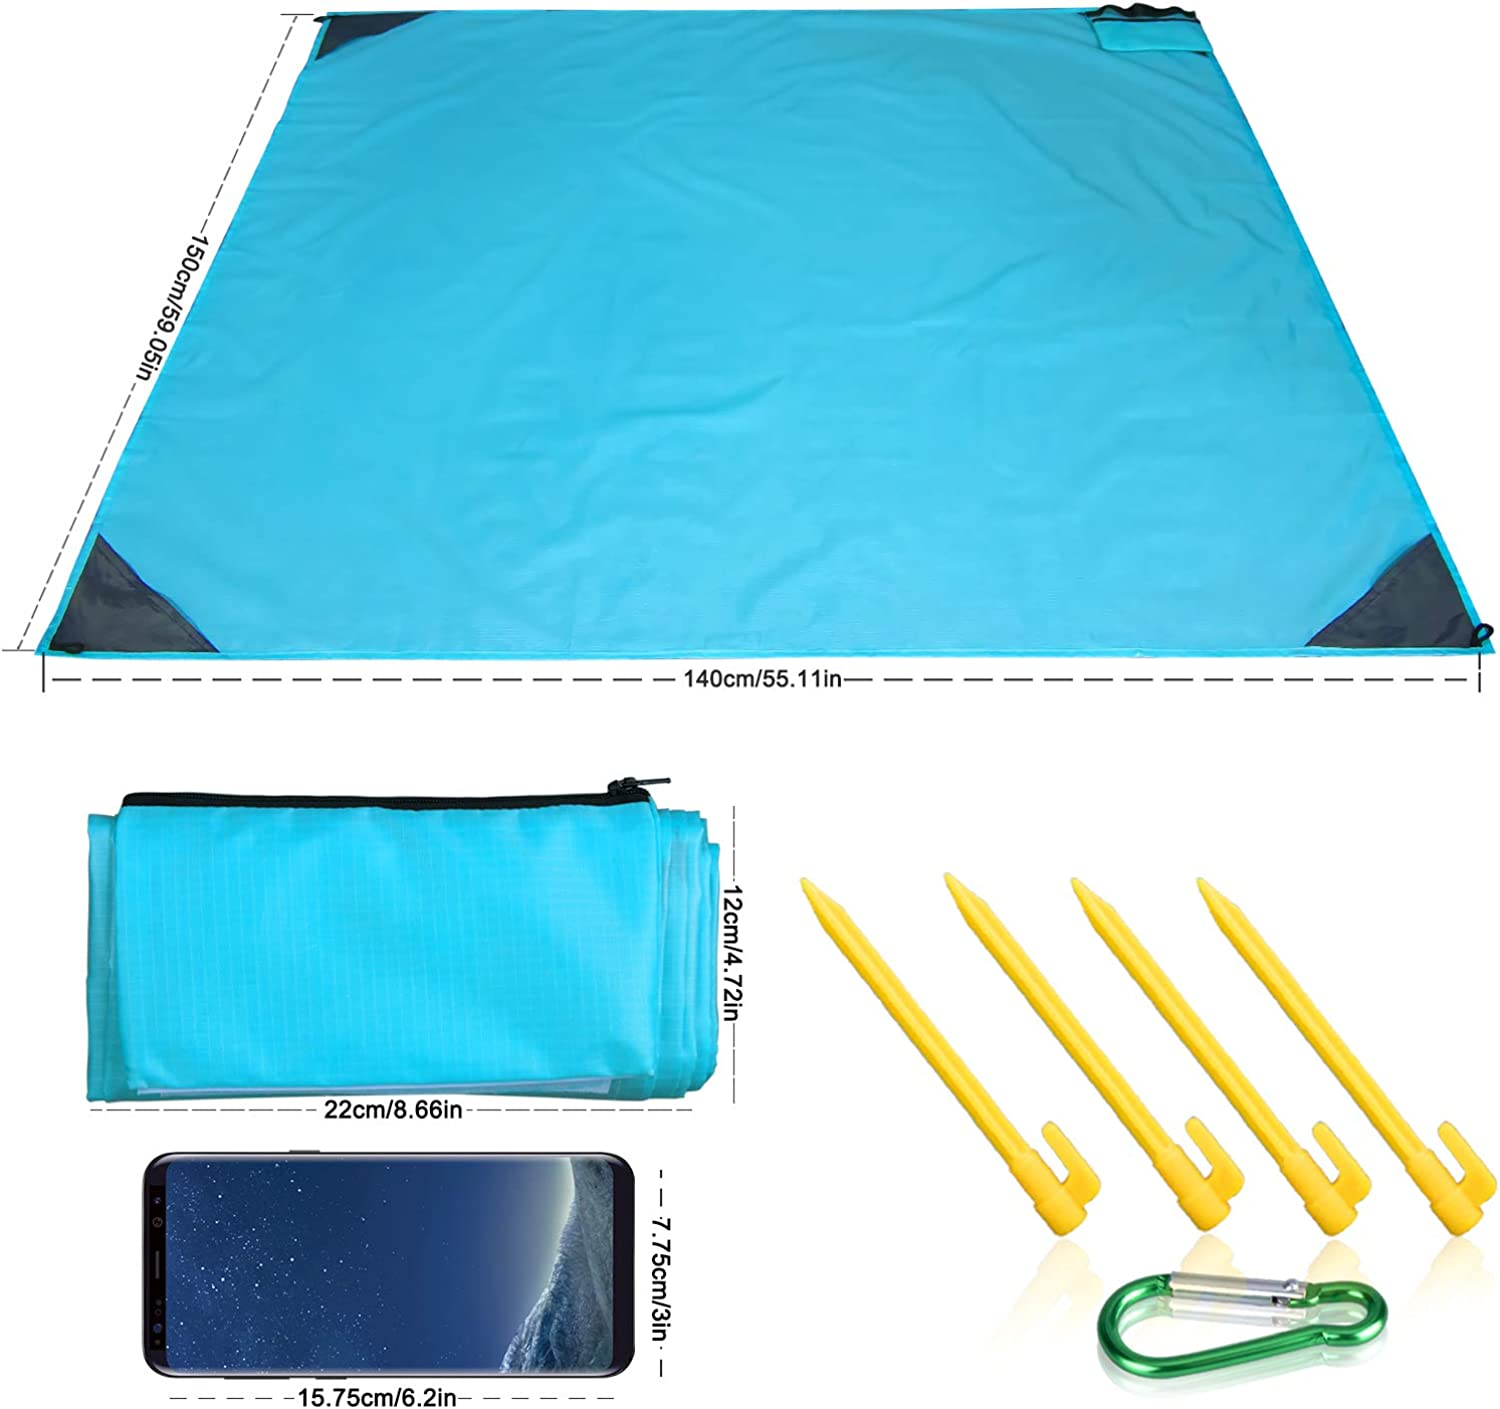 WeTong Outdoor Travel Blanket Travel Waterproof Blanket Portable Blanket(55 X 59 ), Waterproof Collapsible Beach Mat Outdoor Picnic Travel Blanket Suitable forCamping, Travel, Outdoor Gathering